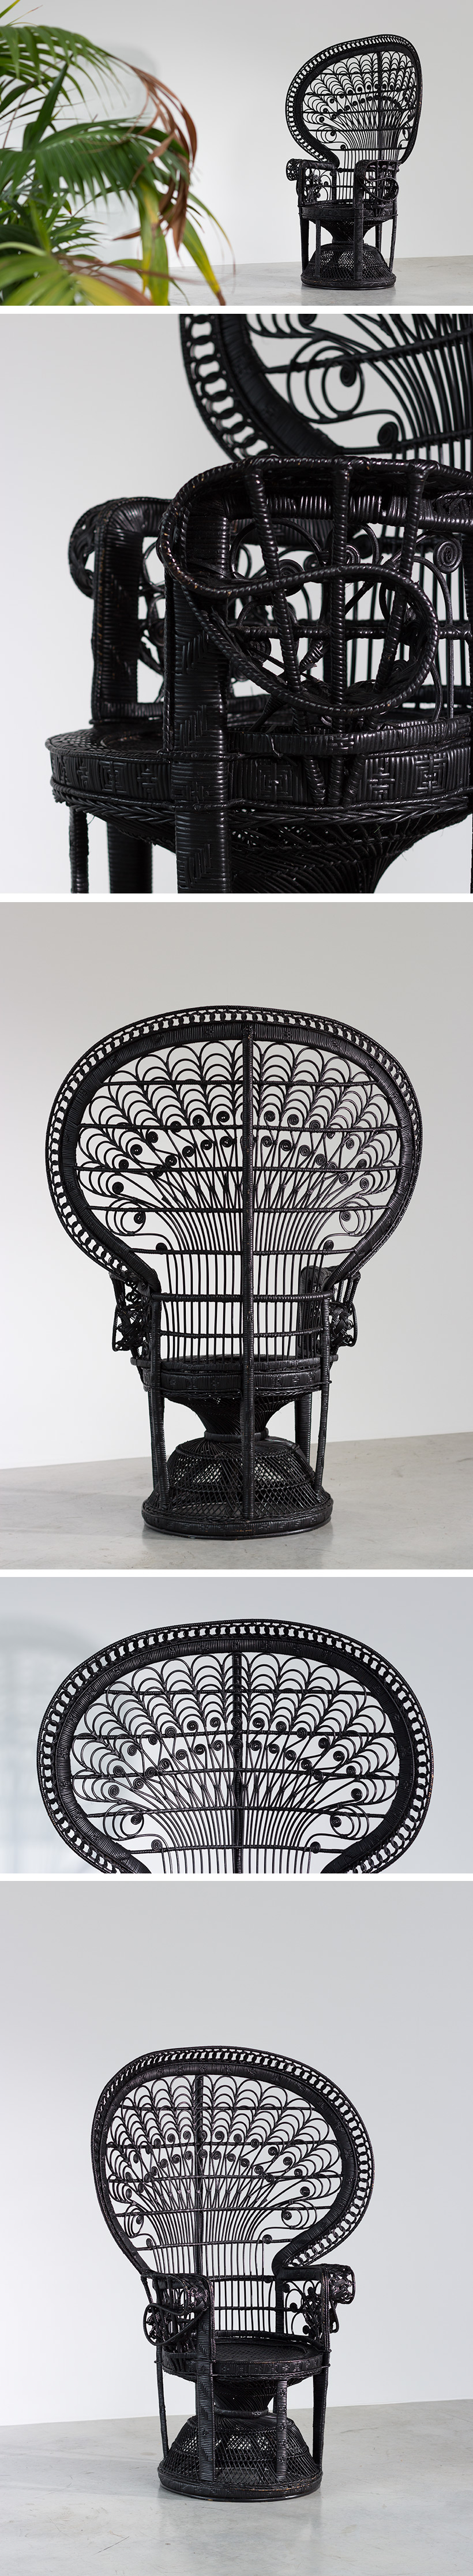 Black Peacock chair or Emmanuelle chair 1970 Large